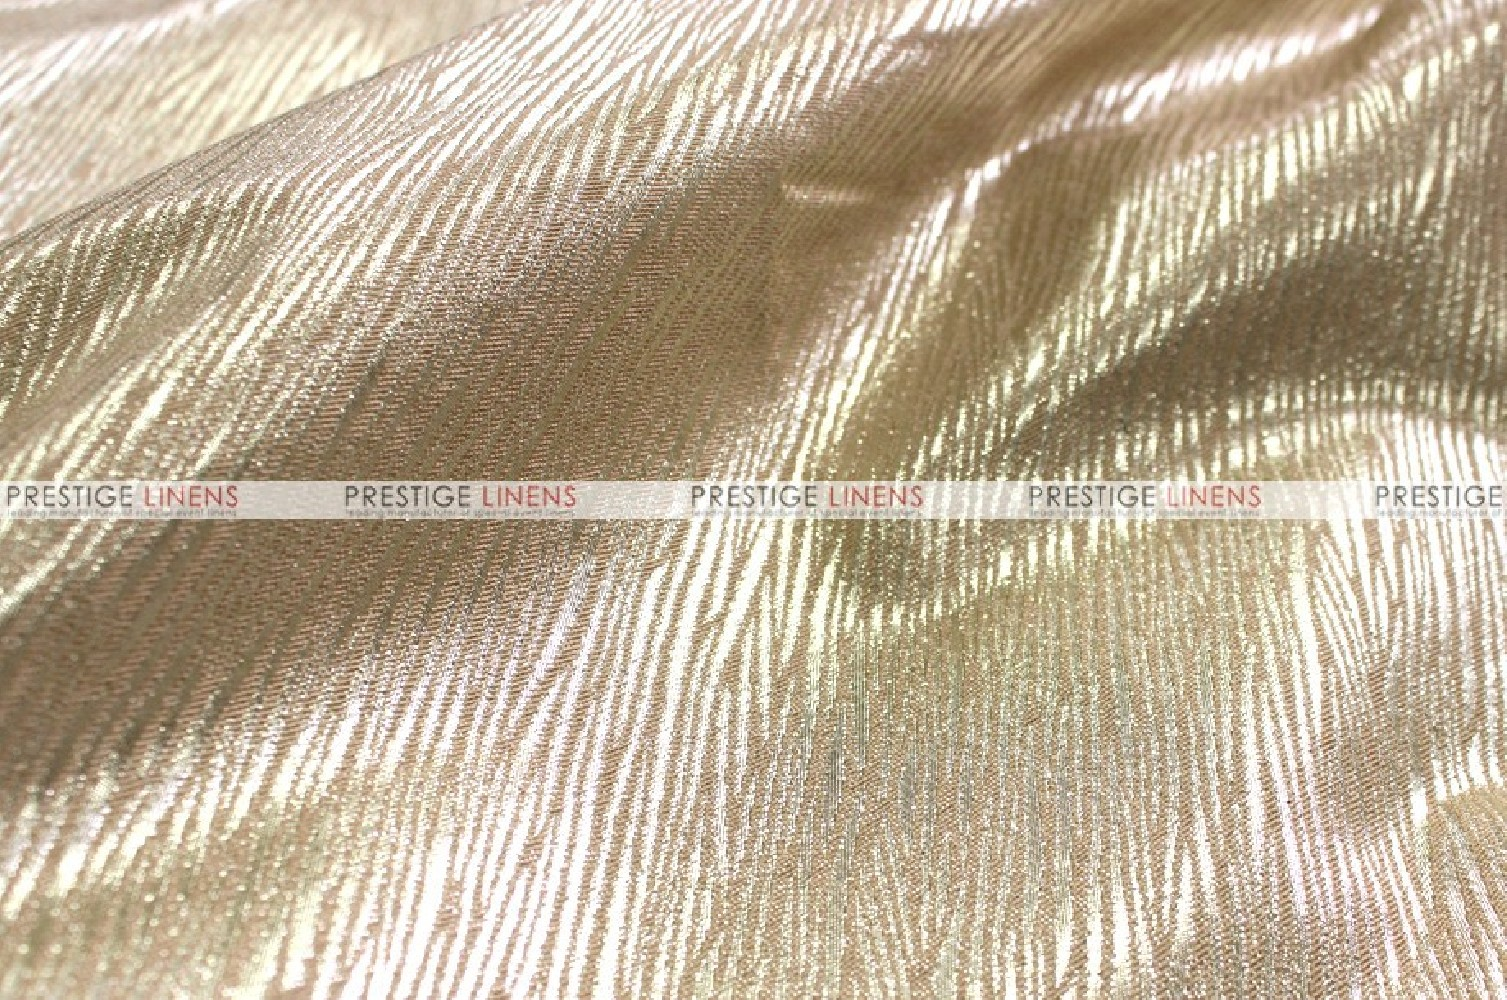 Pulse Fabric By The Yard Flax Prestige Linens